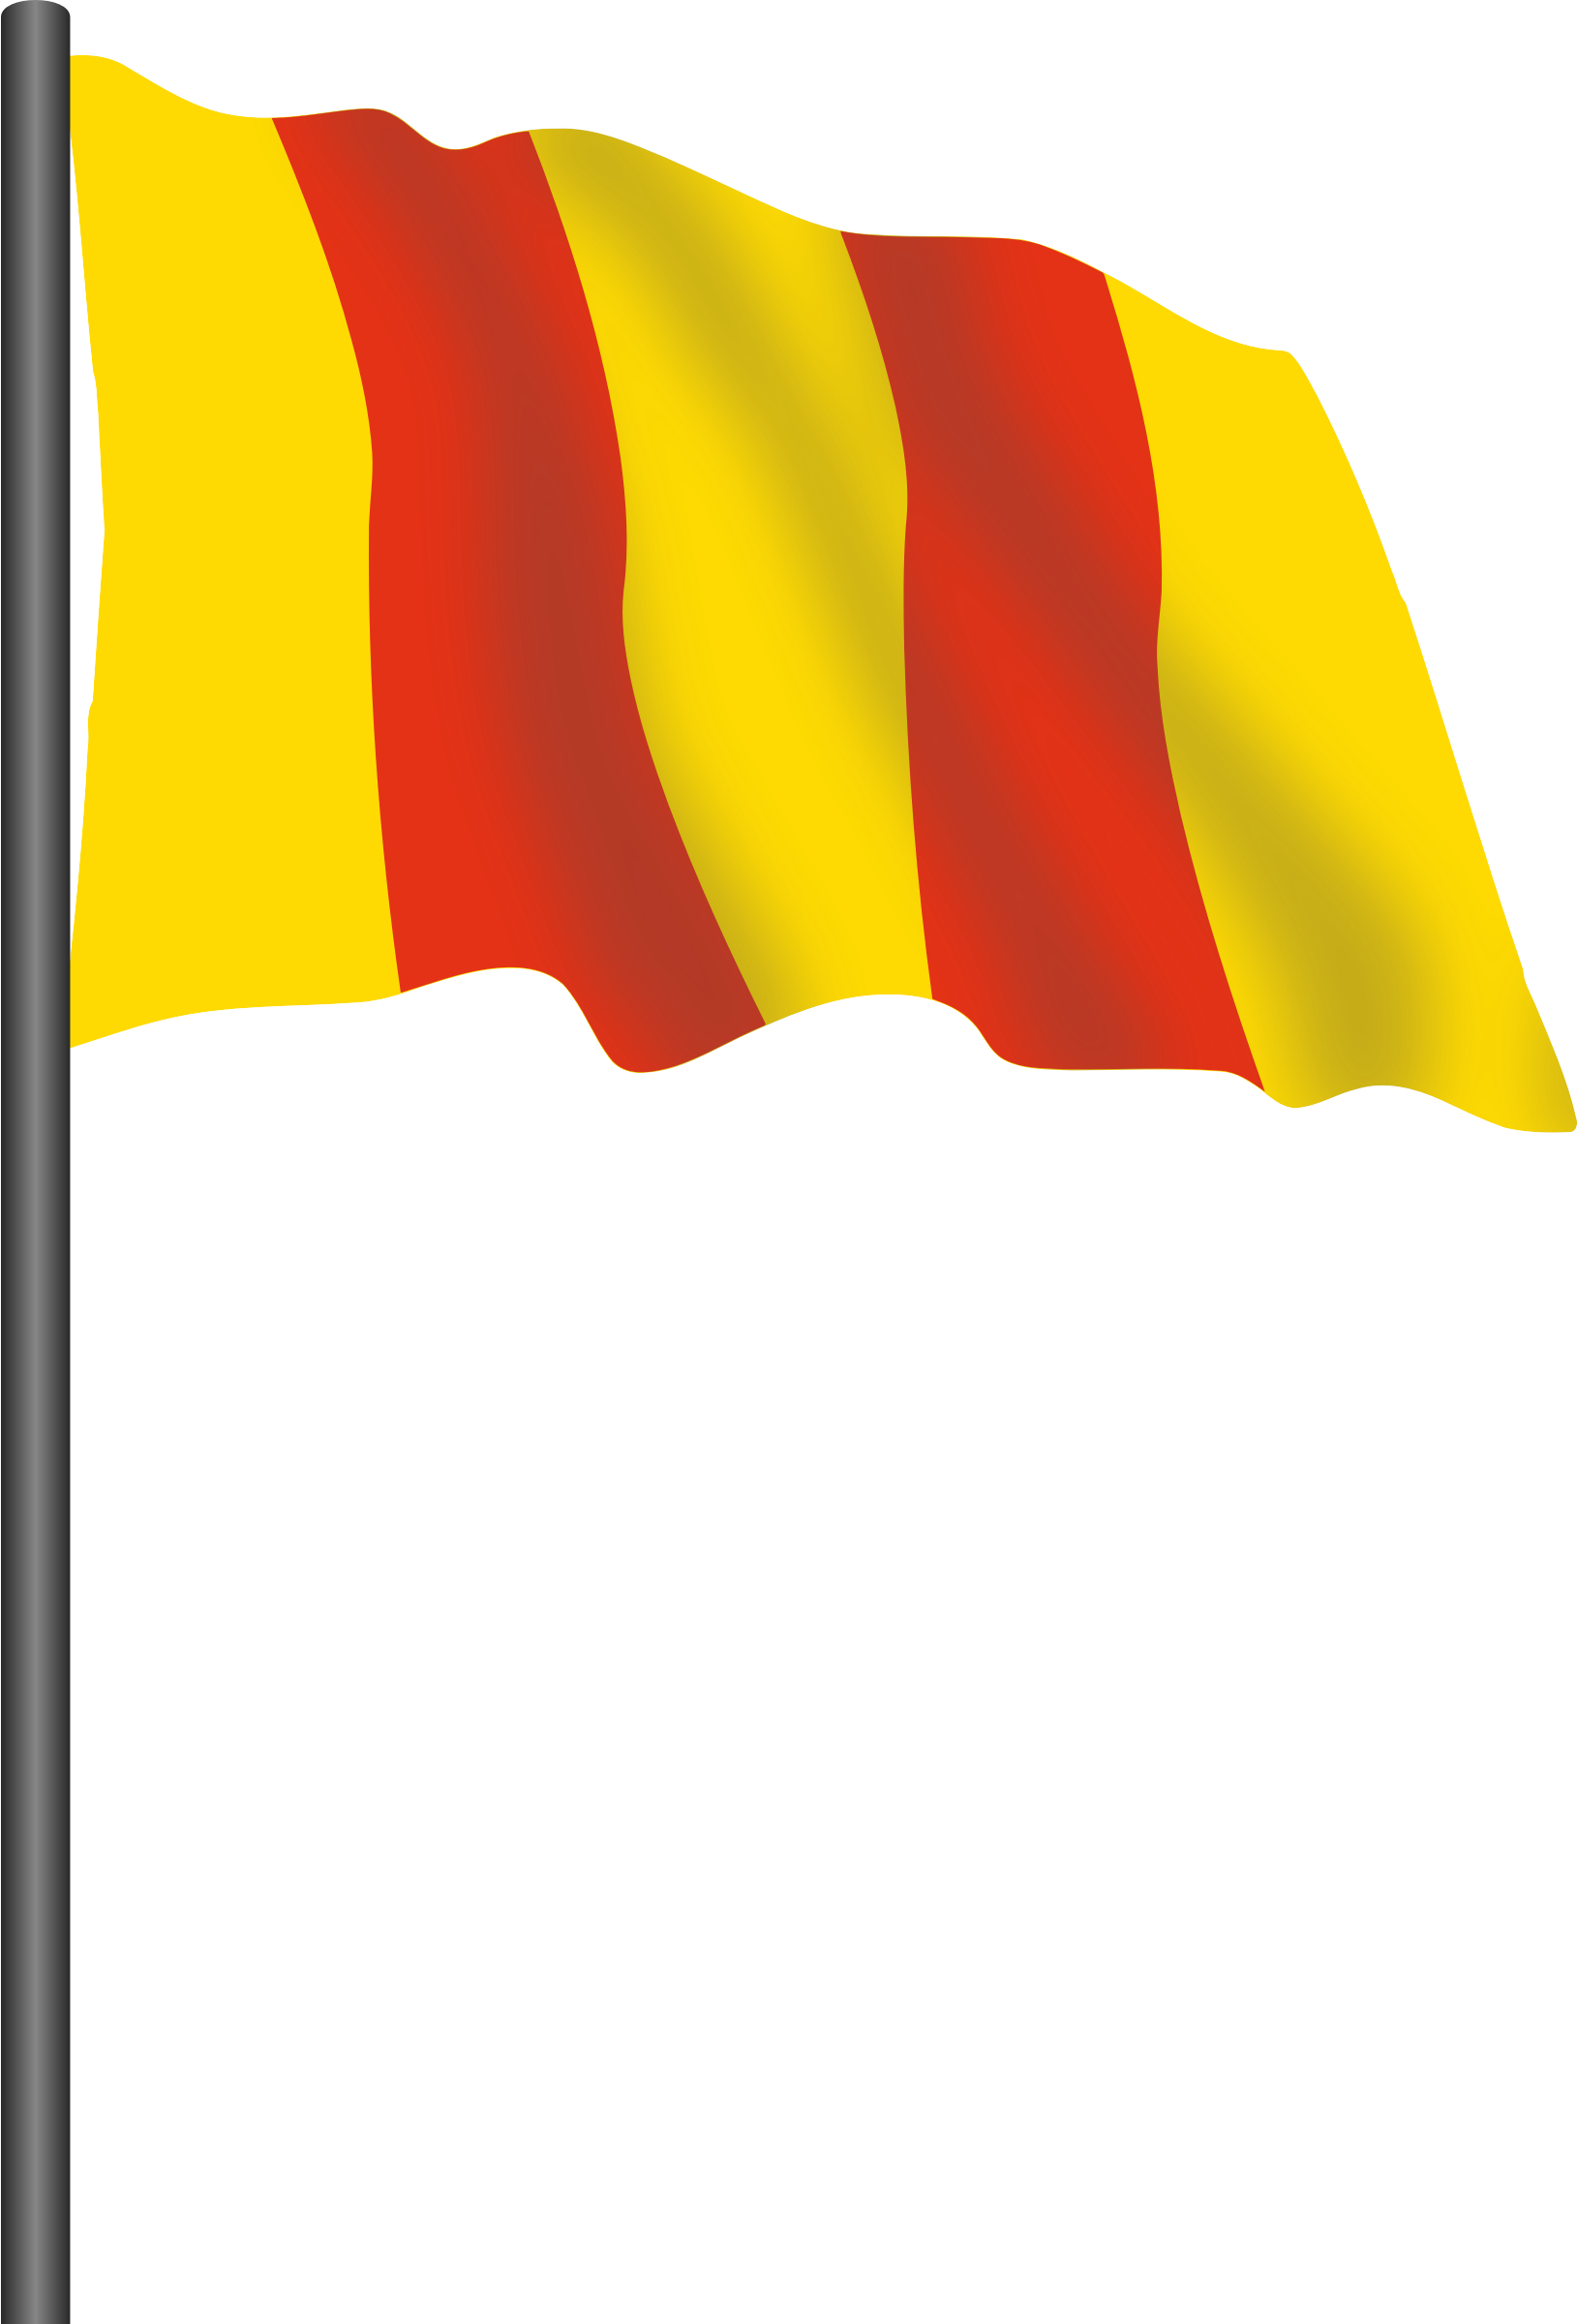 Motor racing flag 8 - red and yellow flag by Firkin